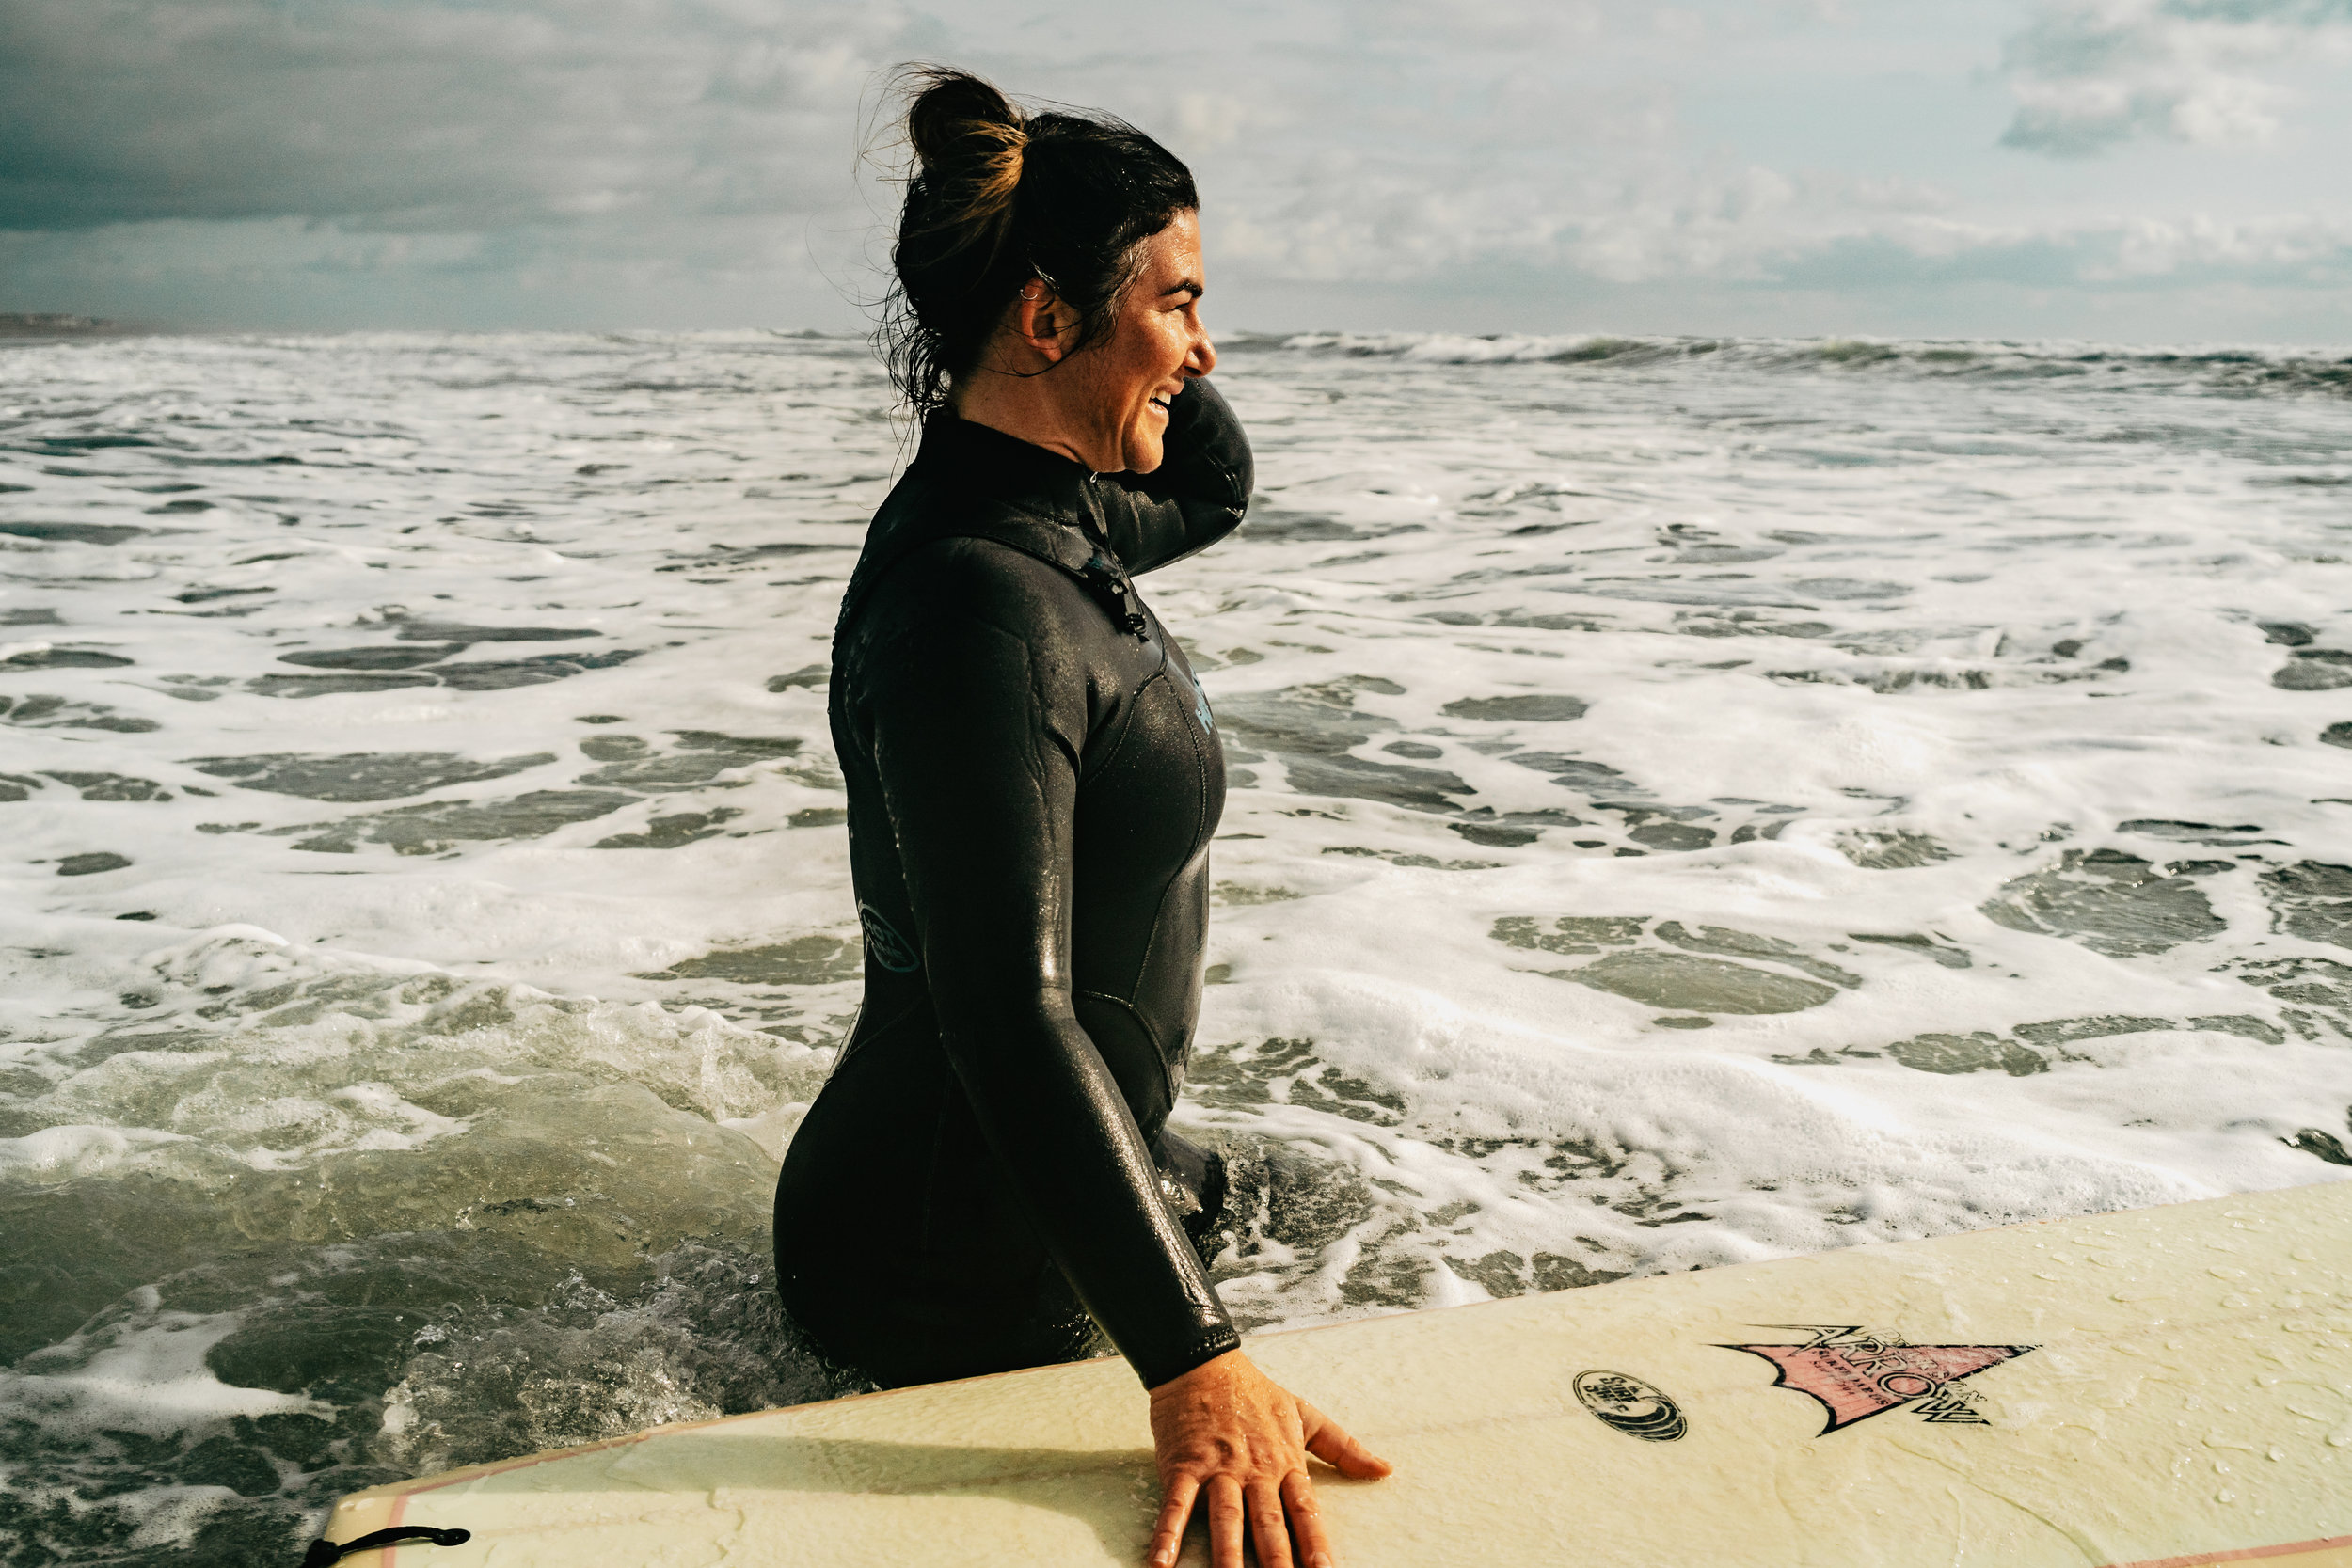 #5 Catch the wave of your life! - Westport is a cold water surfing paradise!